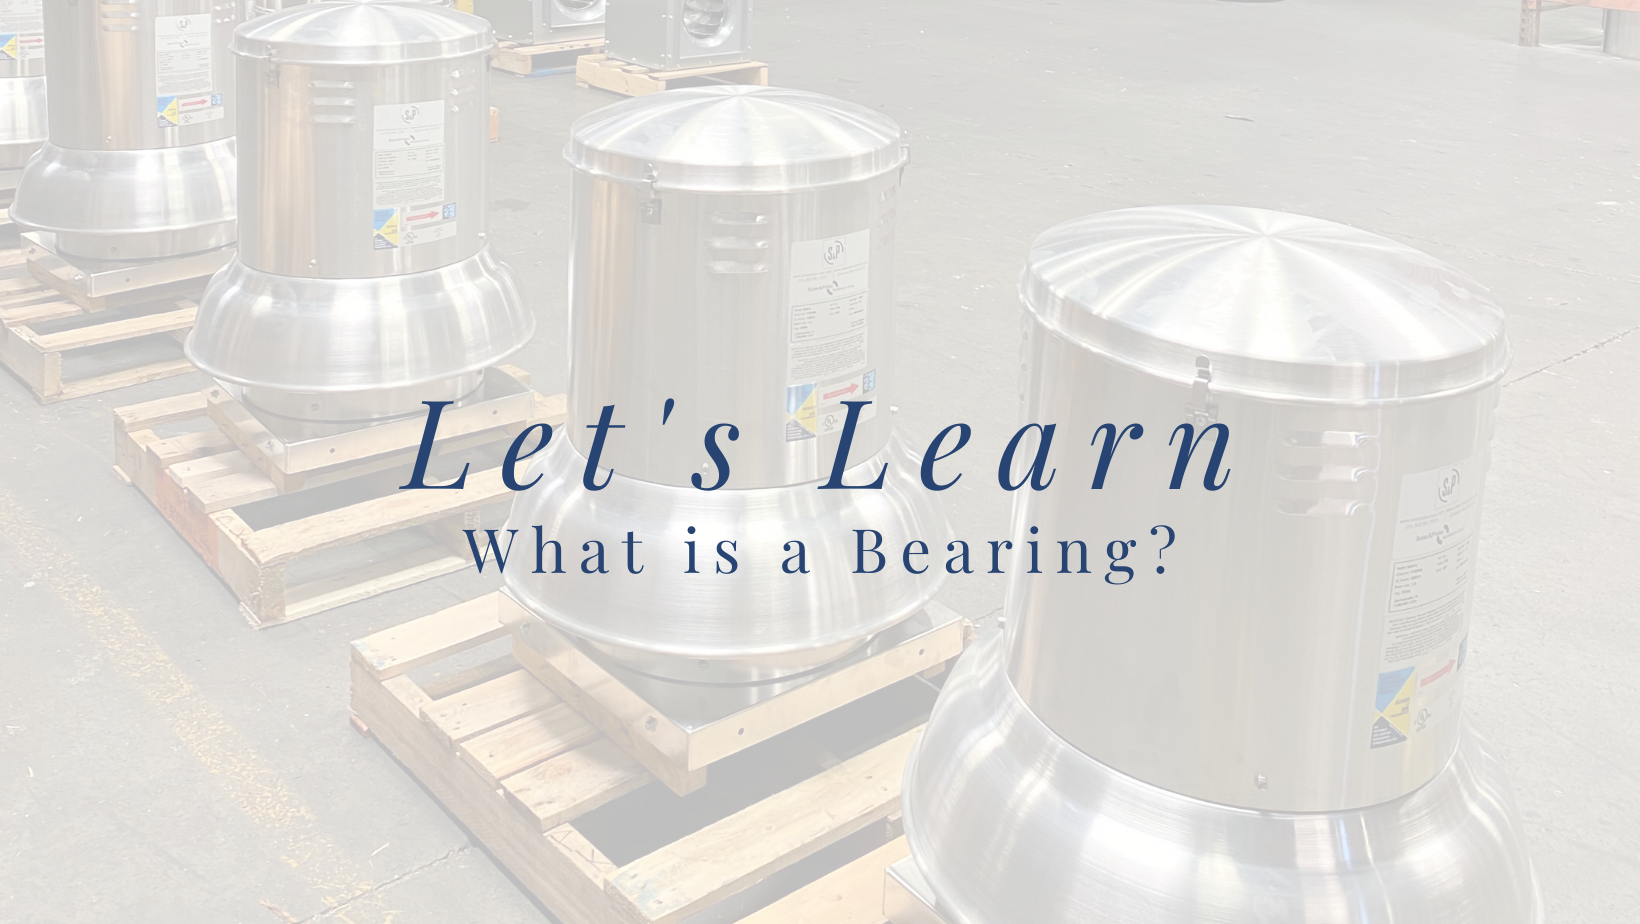 Let's Learn: What is a Bearing?